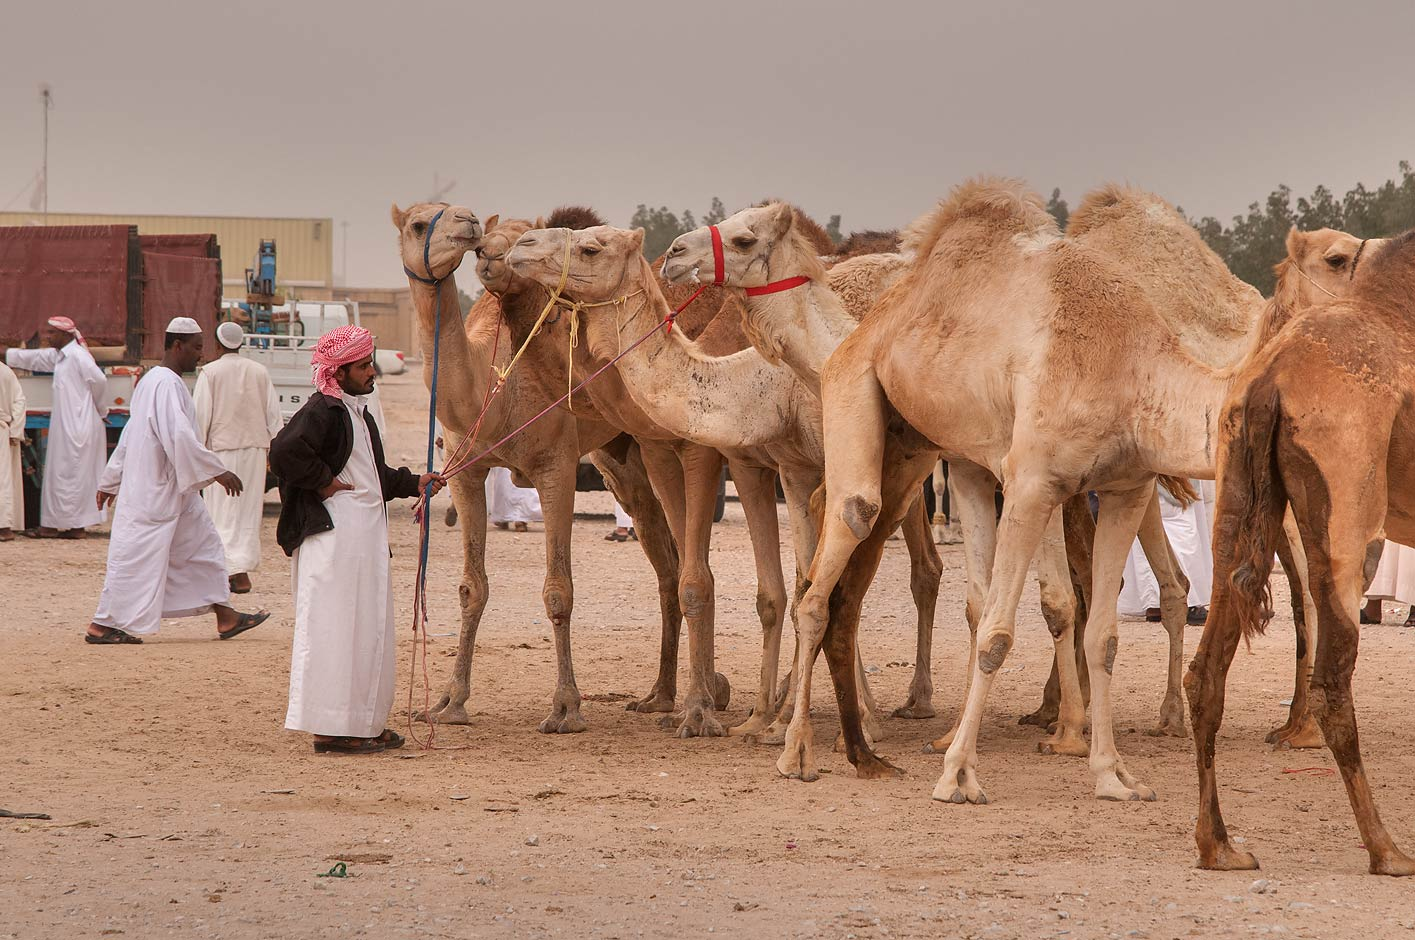 Row of camels in livestock markets, Abu Hamour area. Doha, Qatar